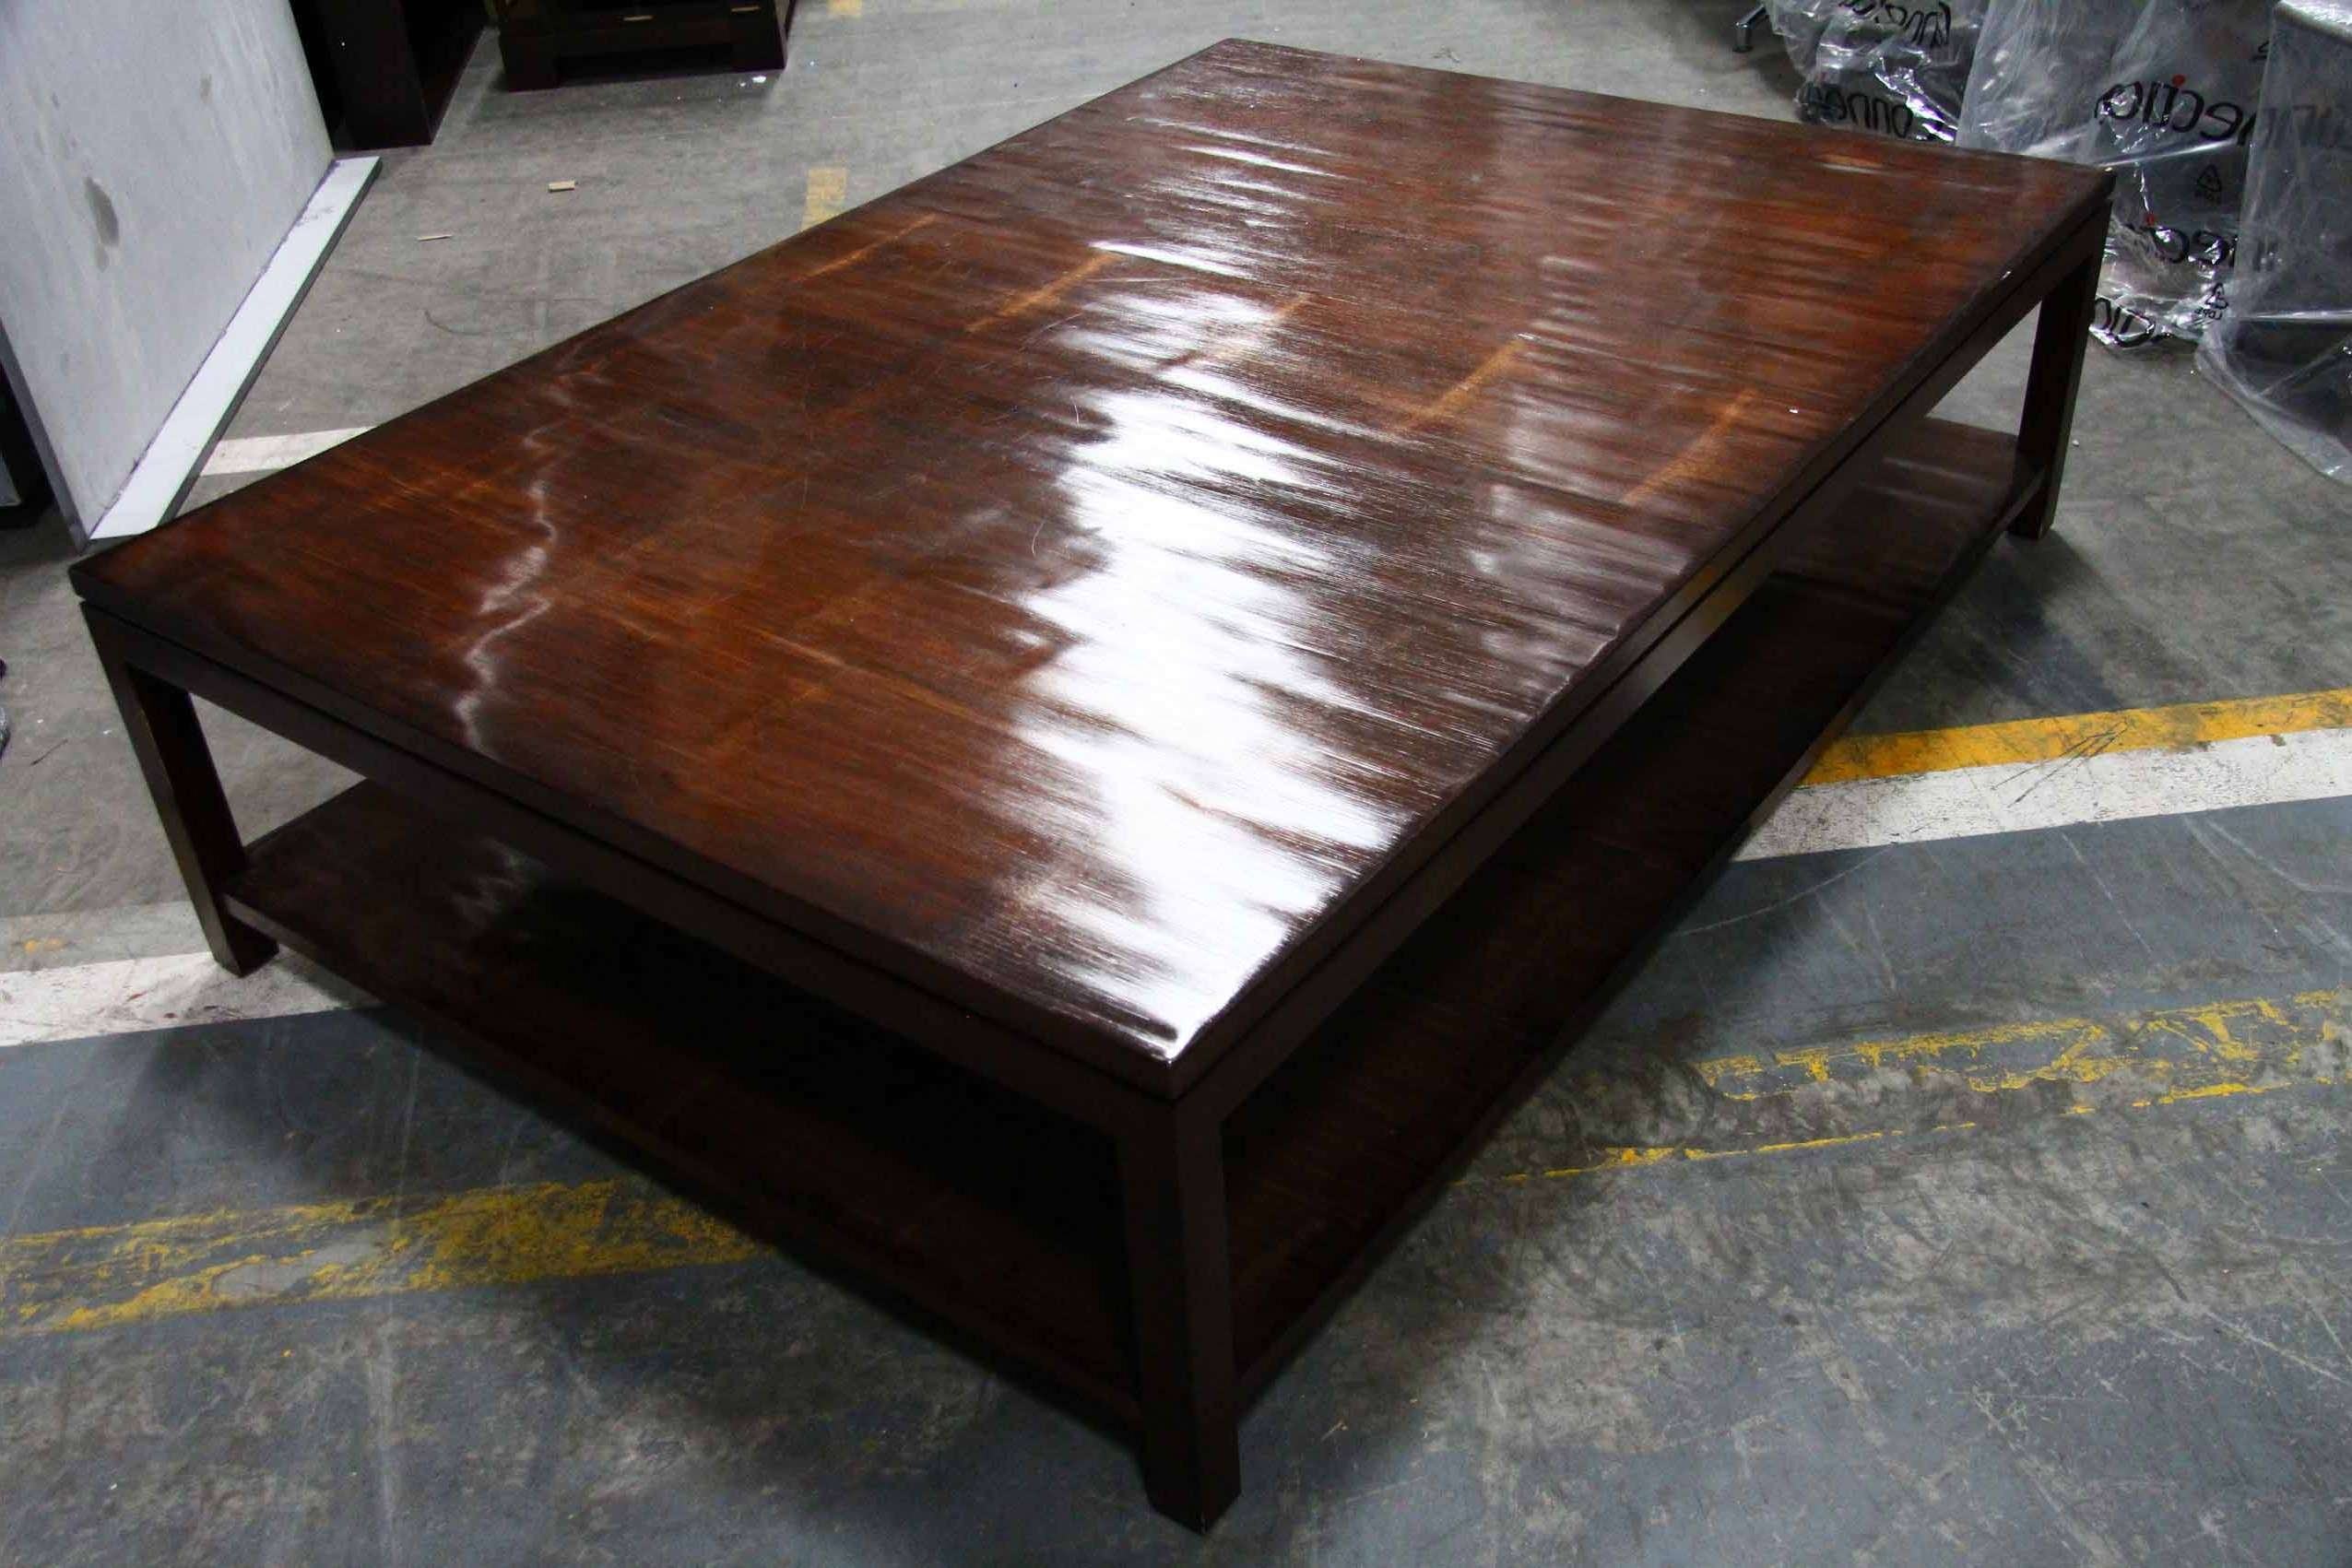 2018 Large Coffee Tables With Storage In Simple Dark Wood Low Coffee Table Large Coffee Table With Storage (View 1 of 20)